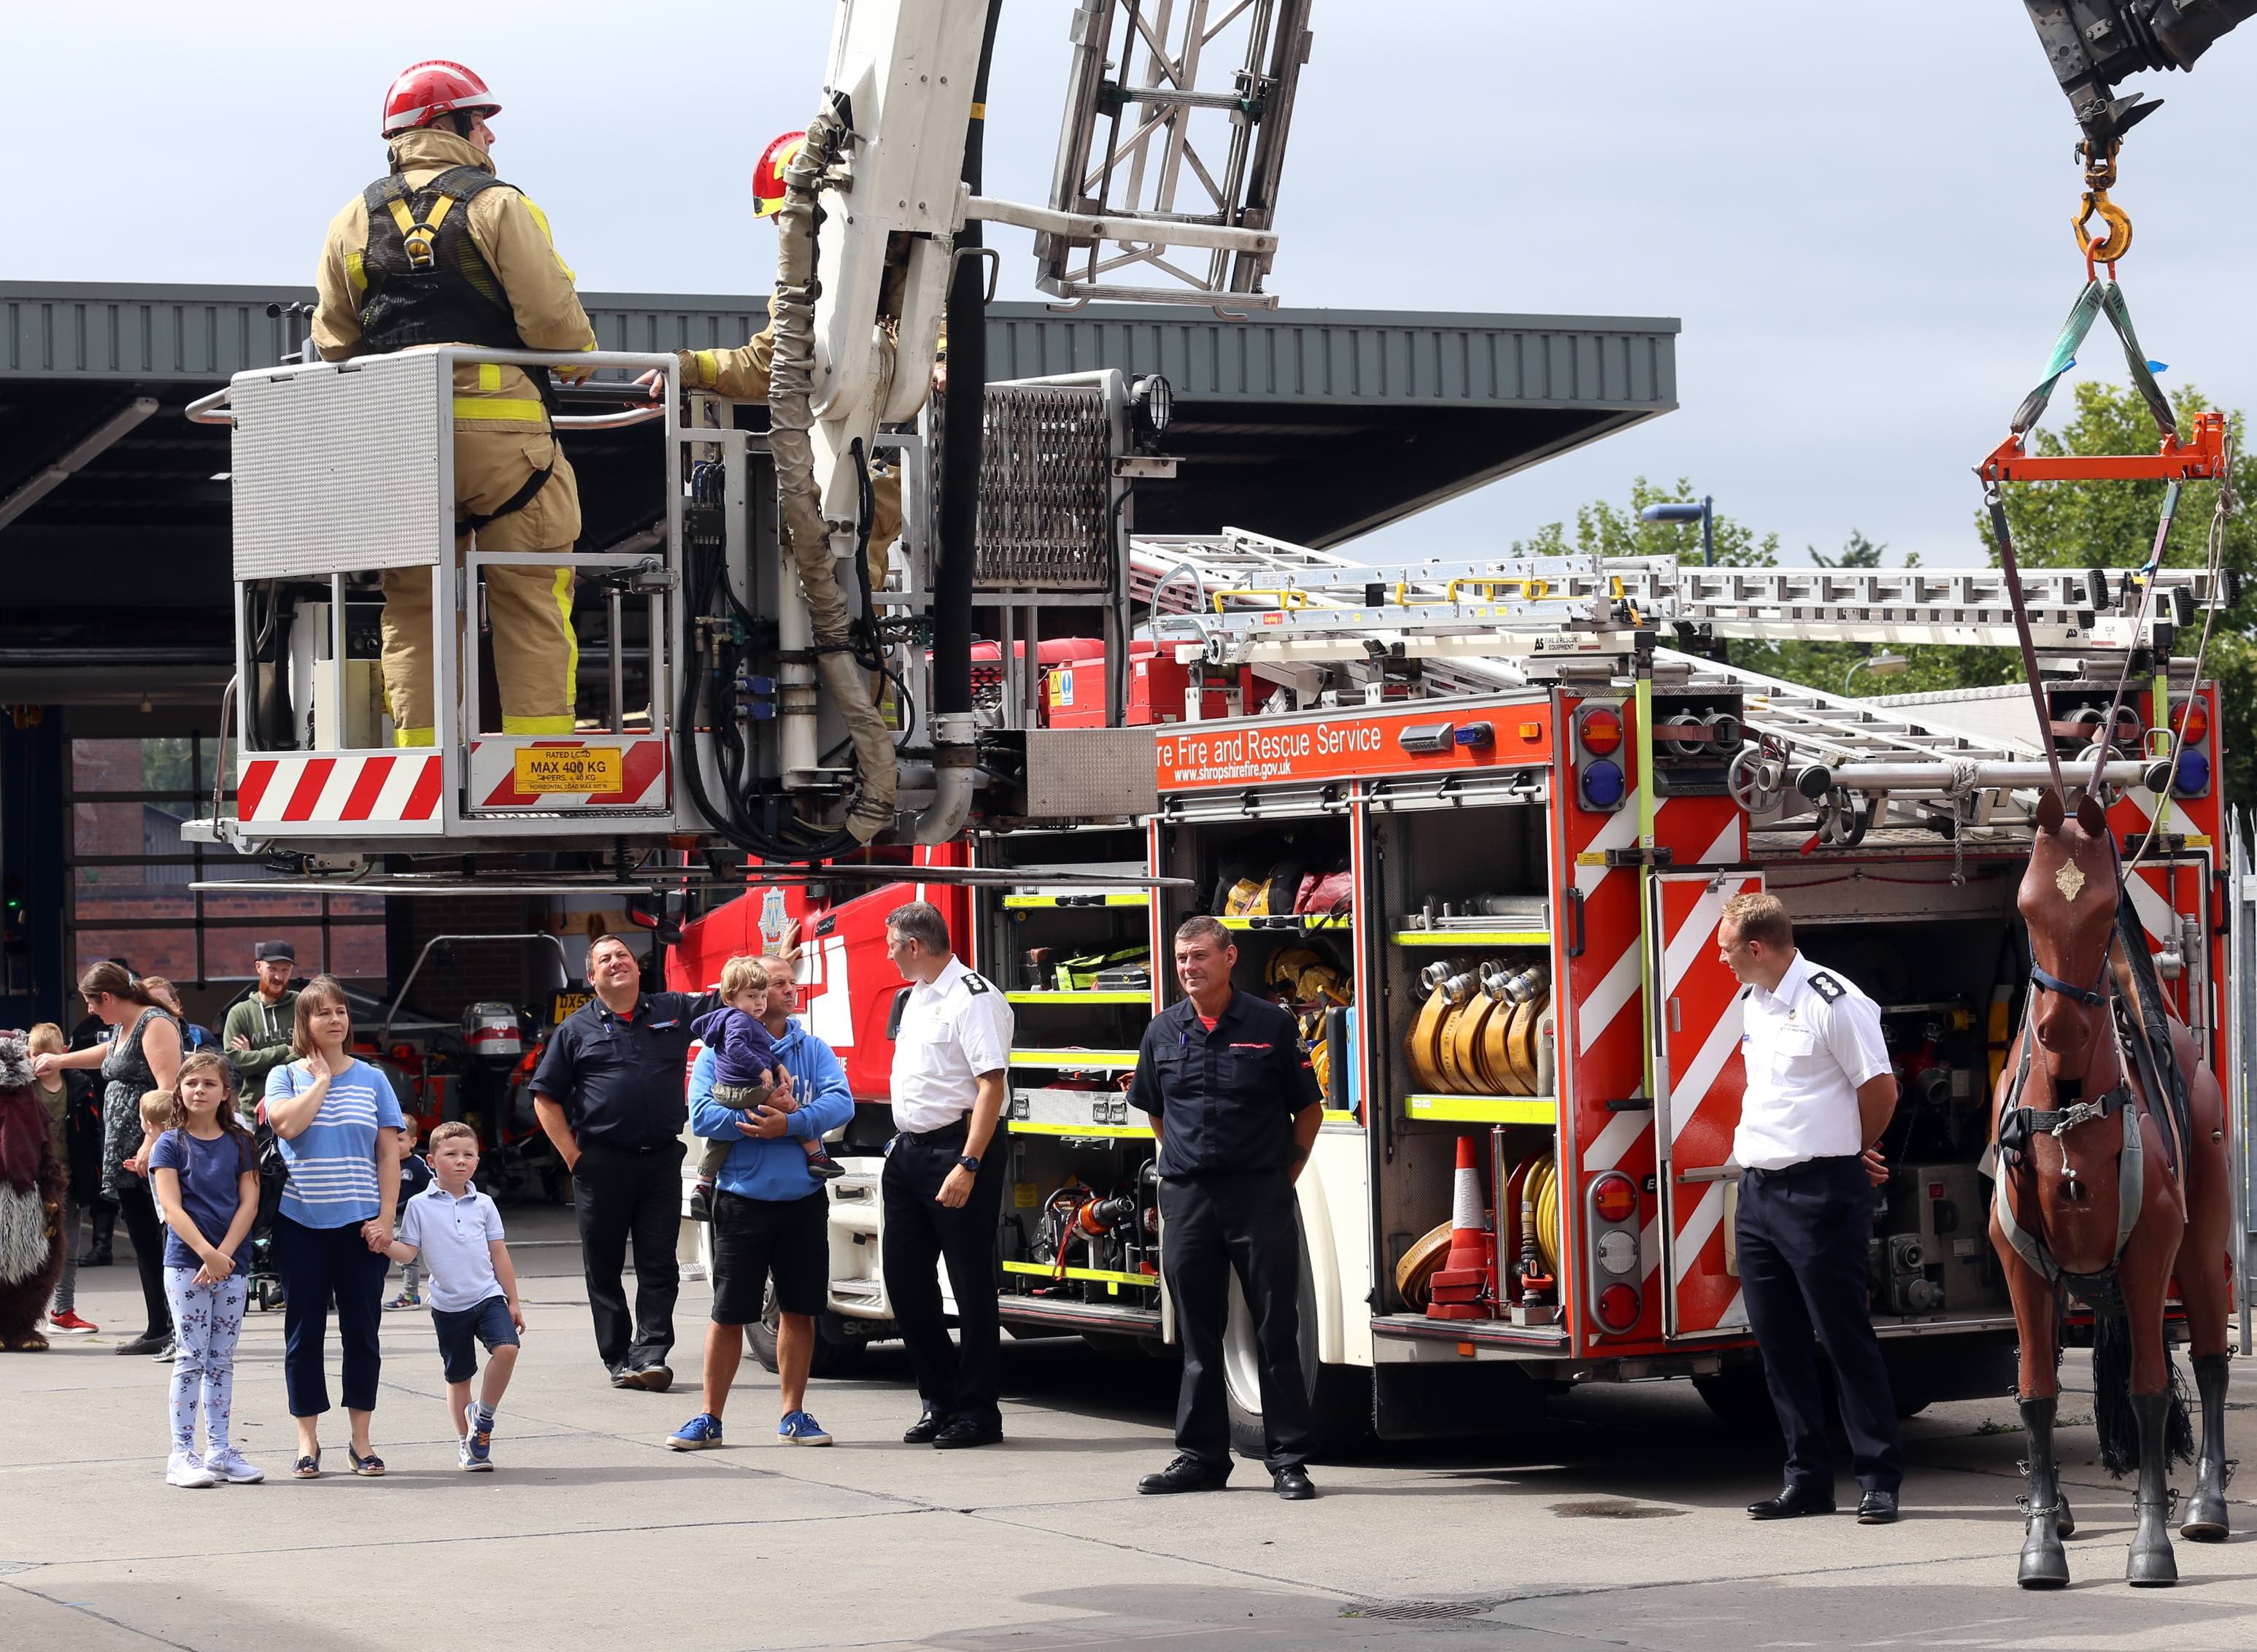 The Aerial Ladder Platform (ALP)begins its ascent.